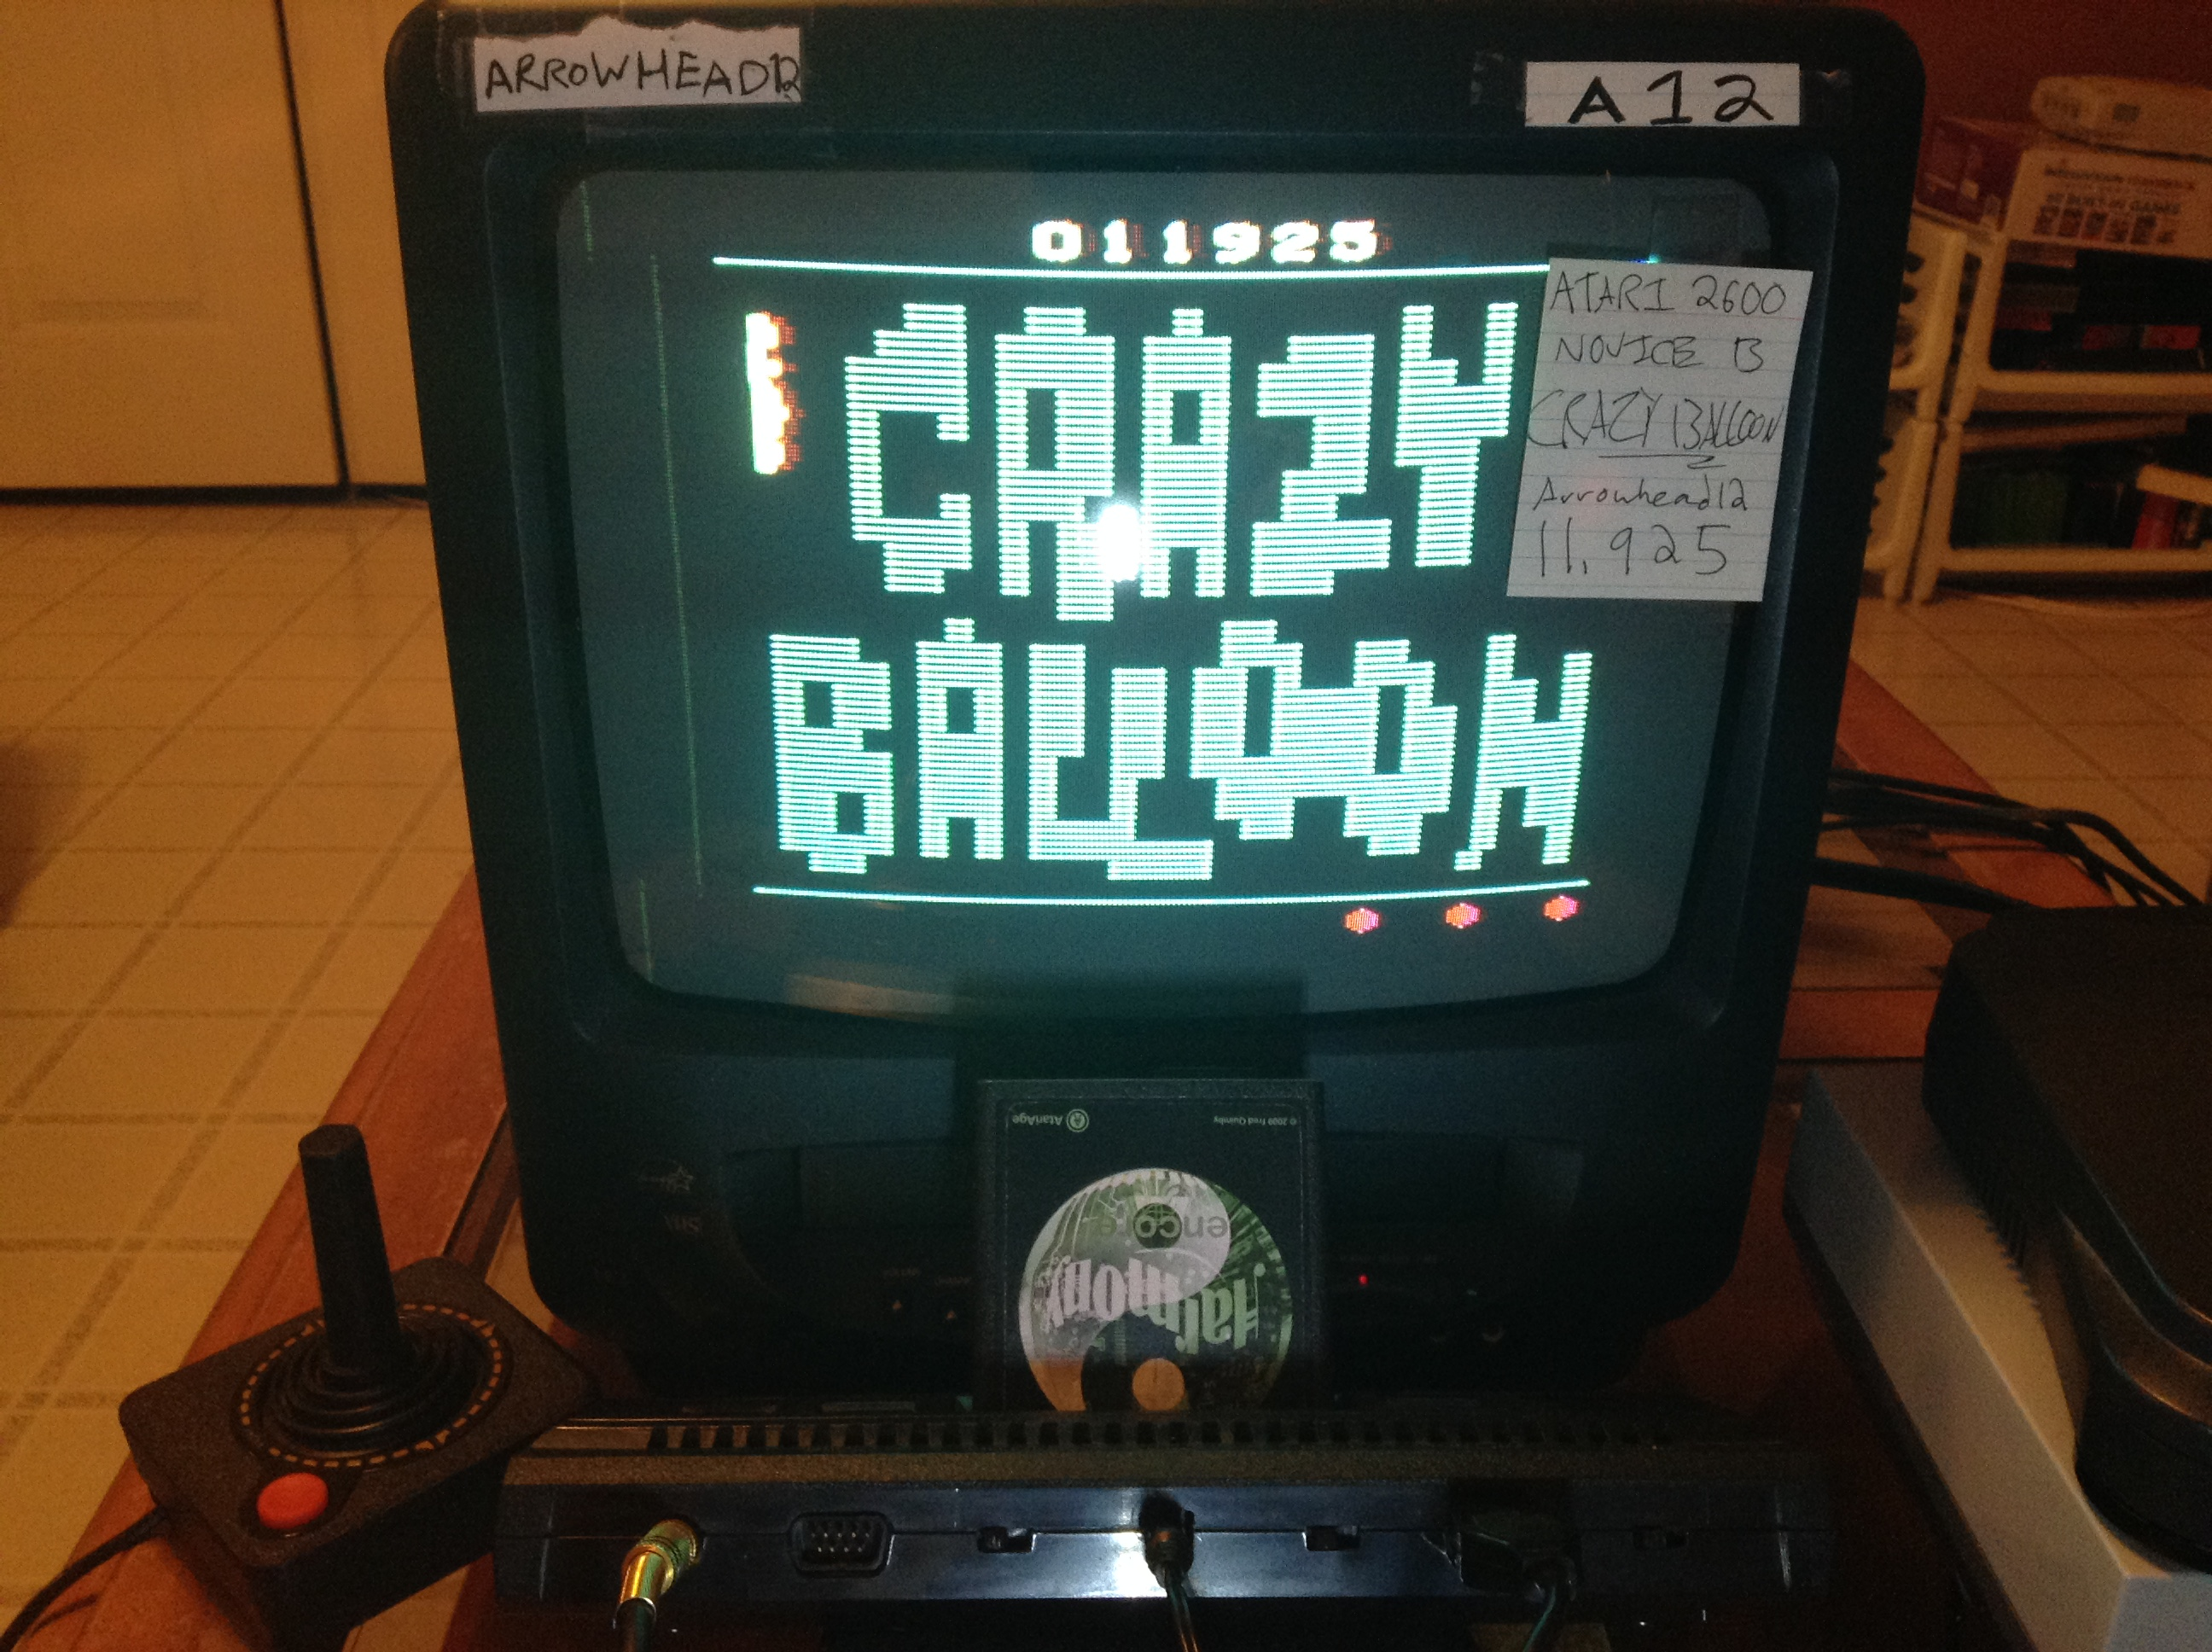 Arrowhead12: Crazy Balloon (Atari 2600 Novice/B) 11,925 points on 2019-01-01 19:02:51